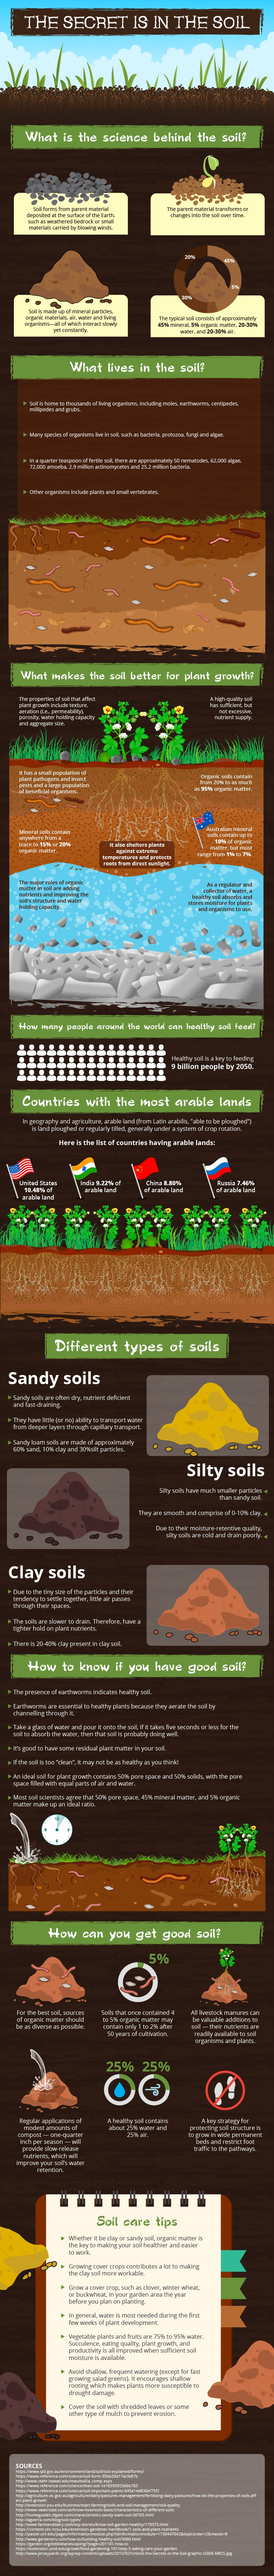 soil, healthy soil, nutrients, healthy planet, soil health, garden, gardening, growing, grow your own, green living, our world, #livinglifewild, environment, rattan direct, infographic